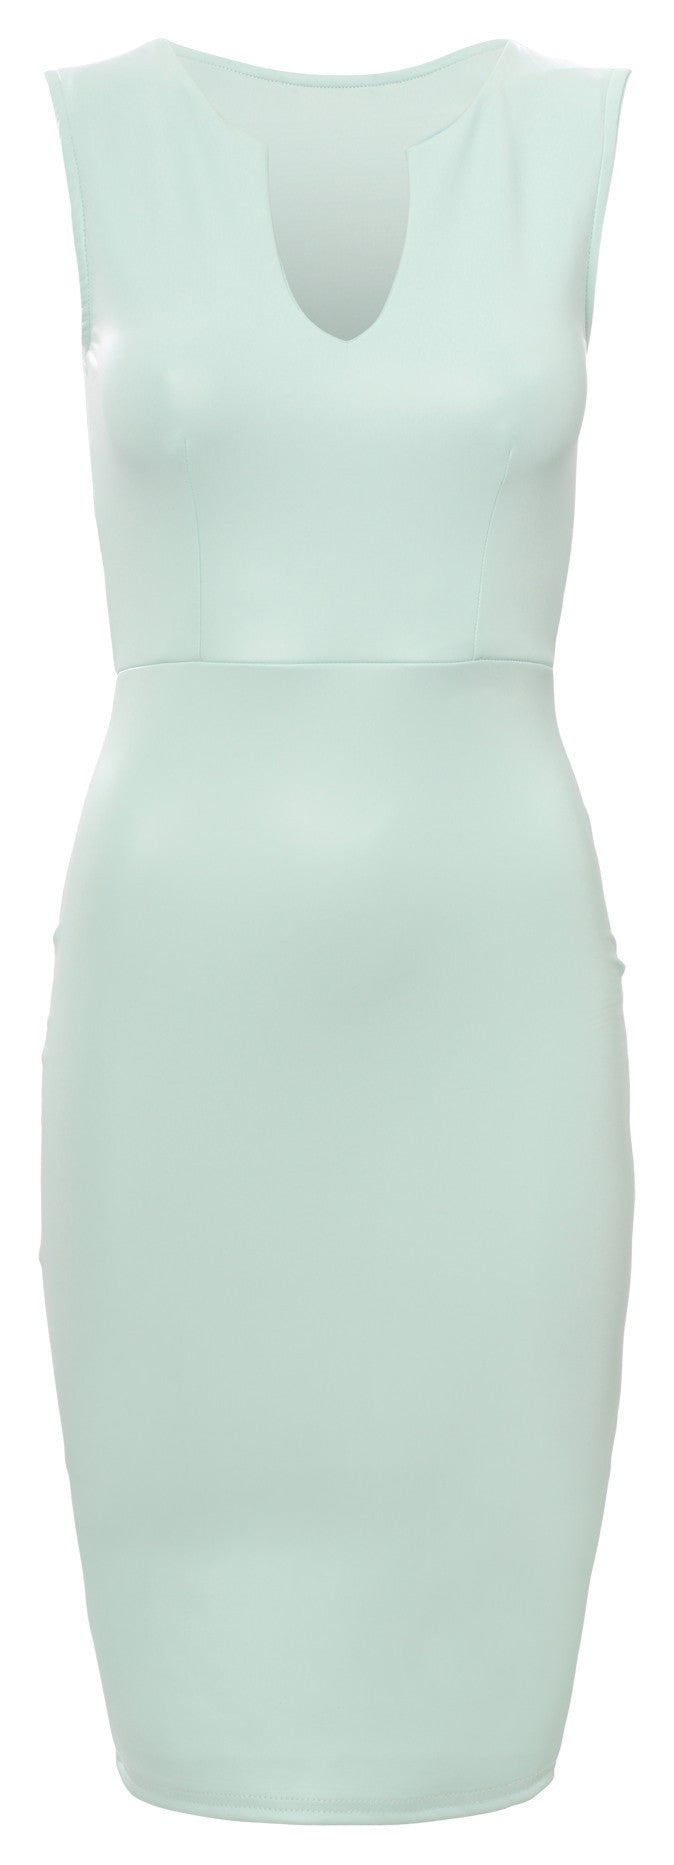 Mint PVC Matt Sleeveless Dress